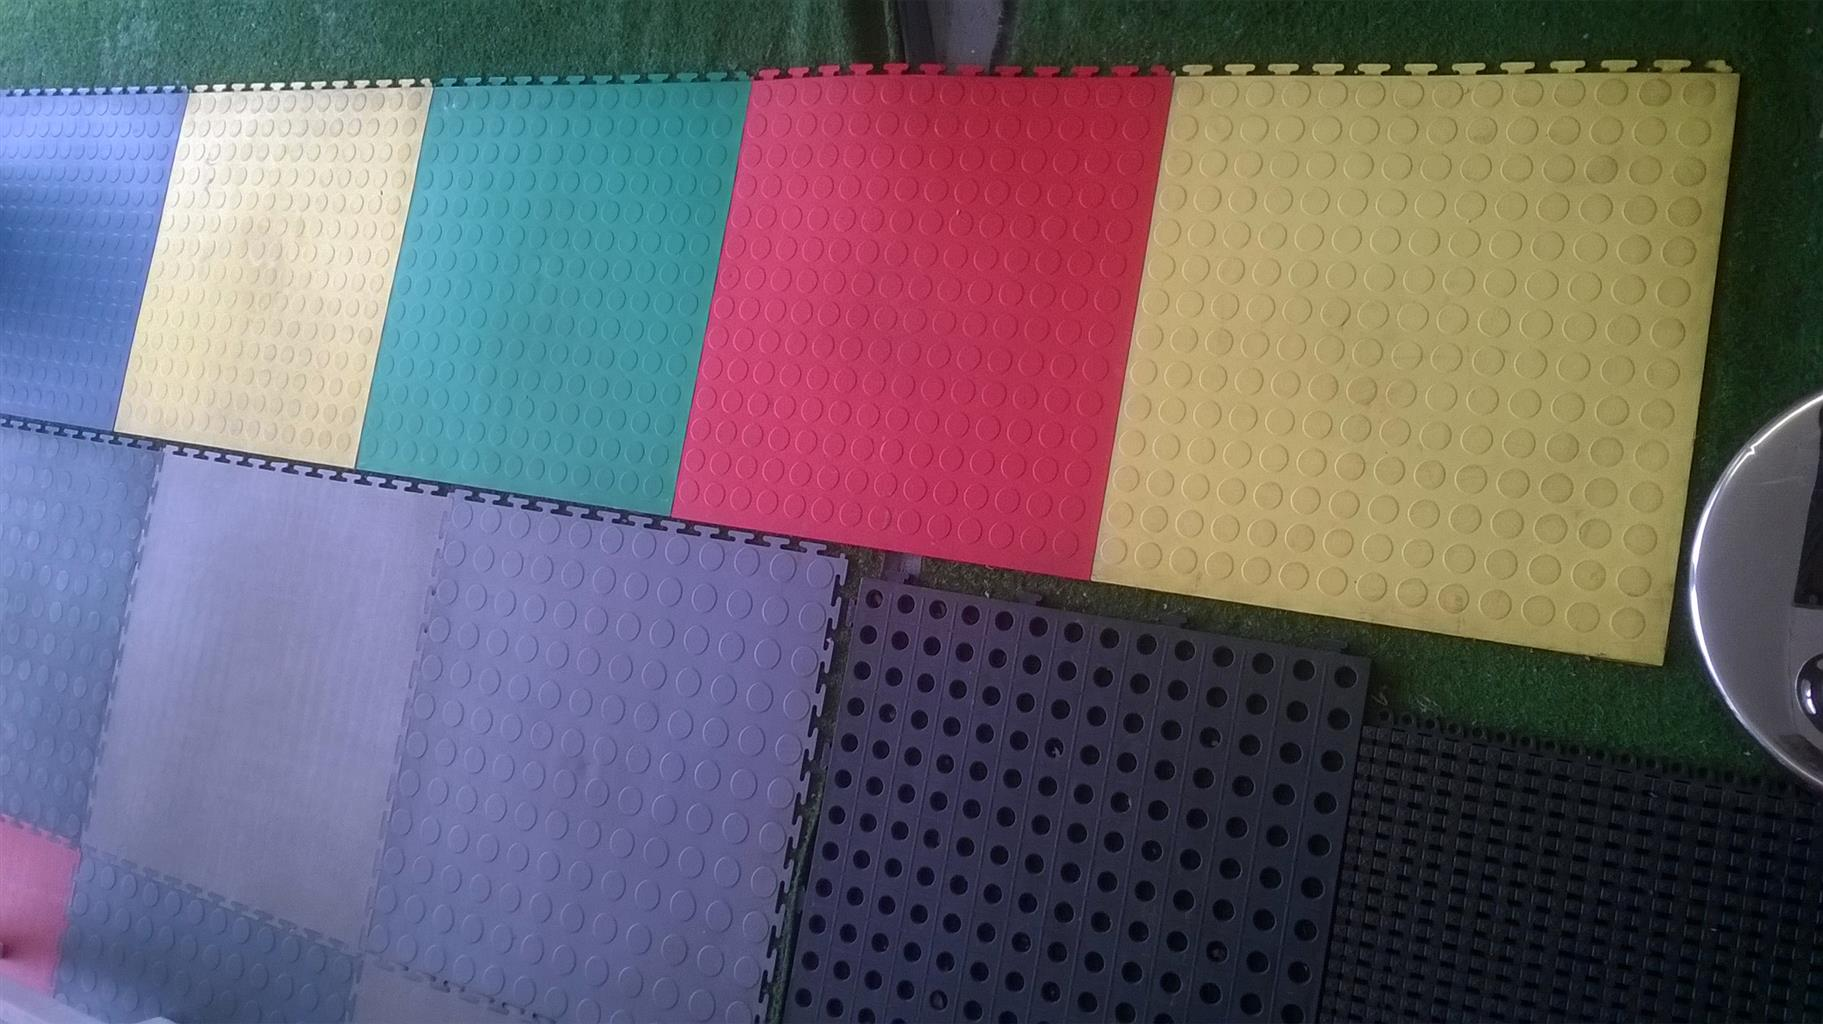 FLOORING - NEW PLASTIC TILES (PER SQUARE METER) FOR SALE AT WHOLESALE PRICES